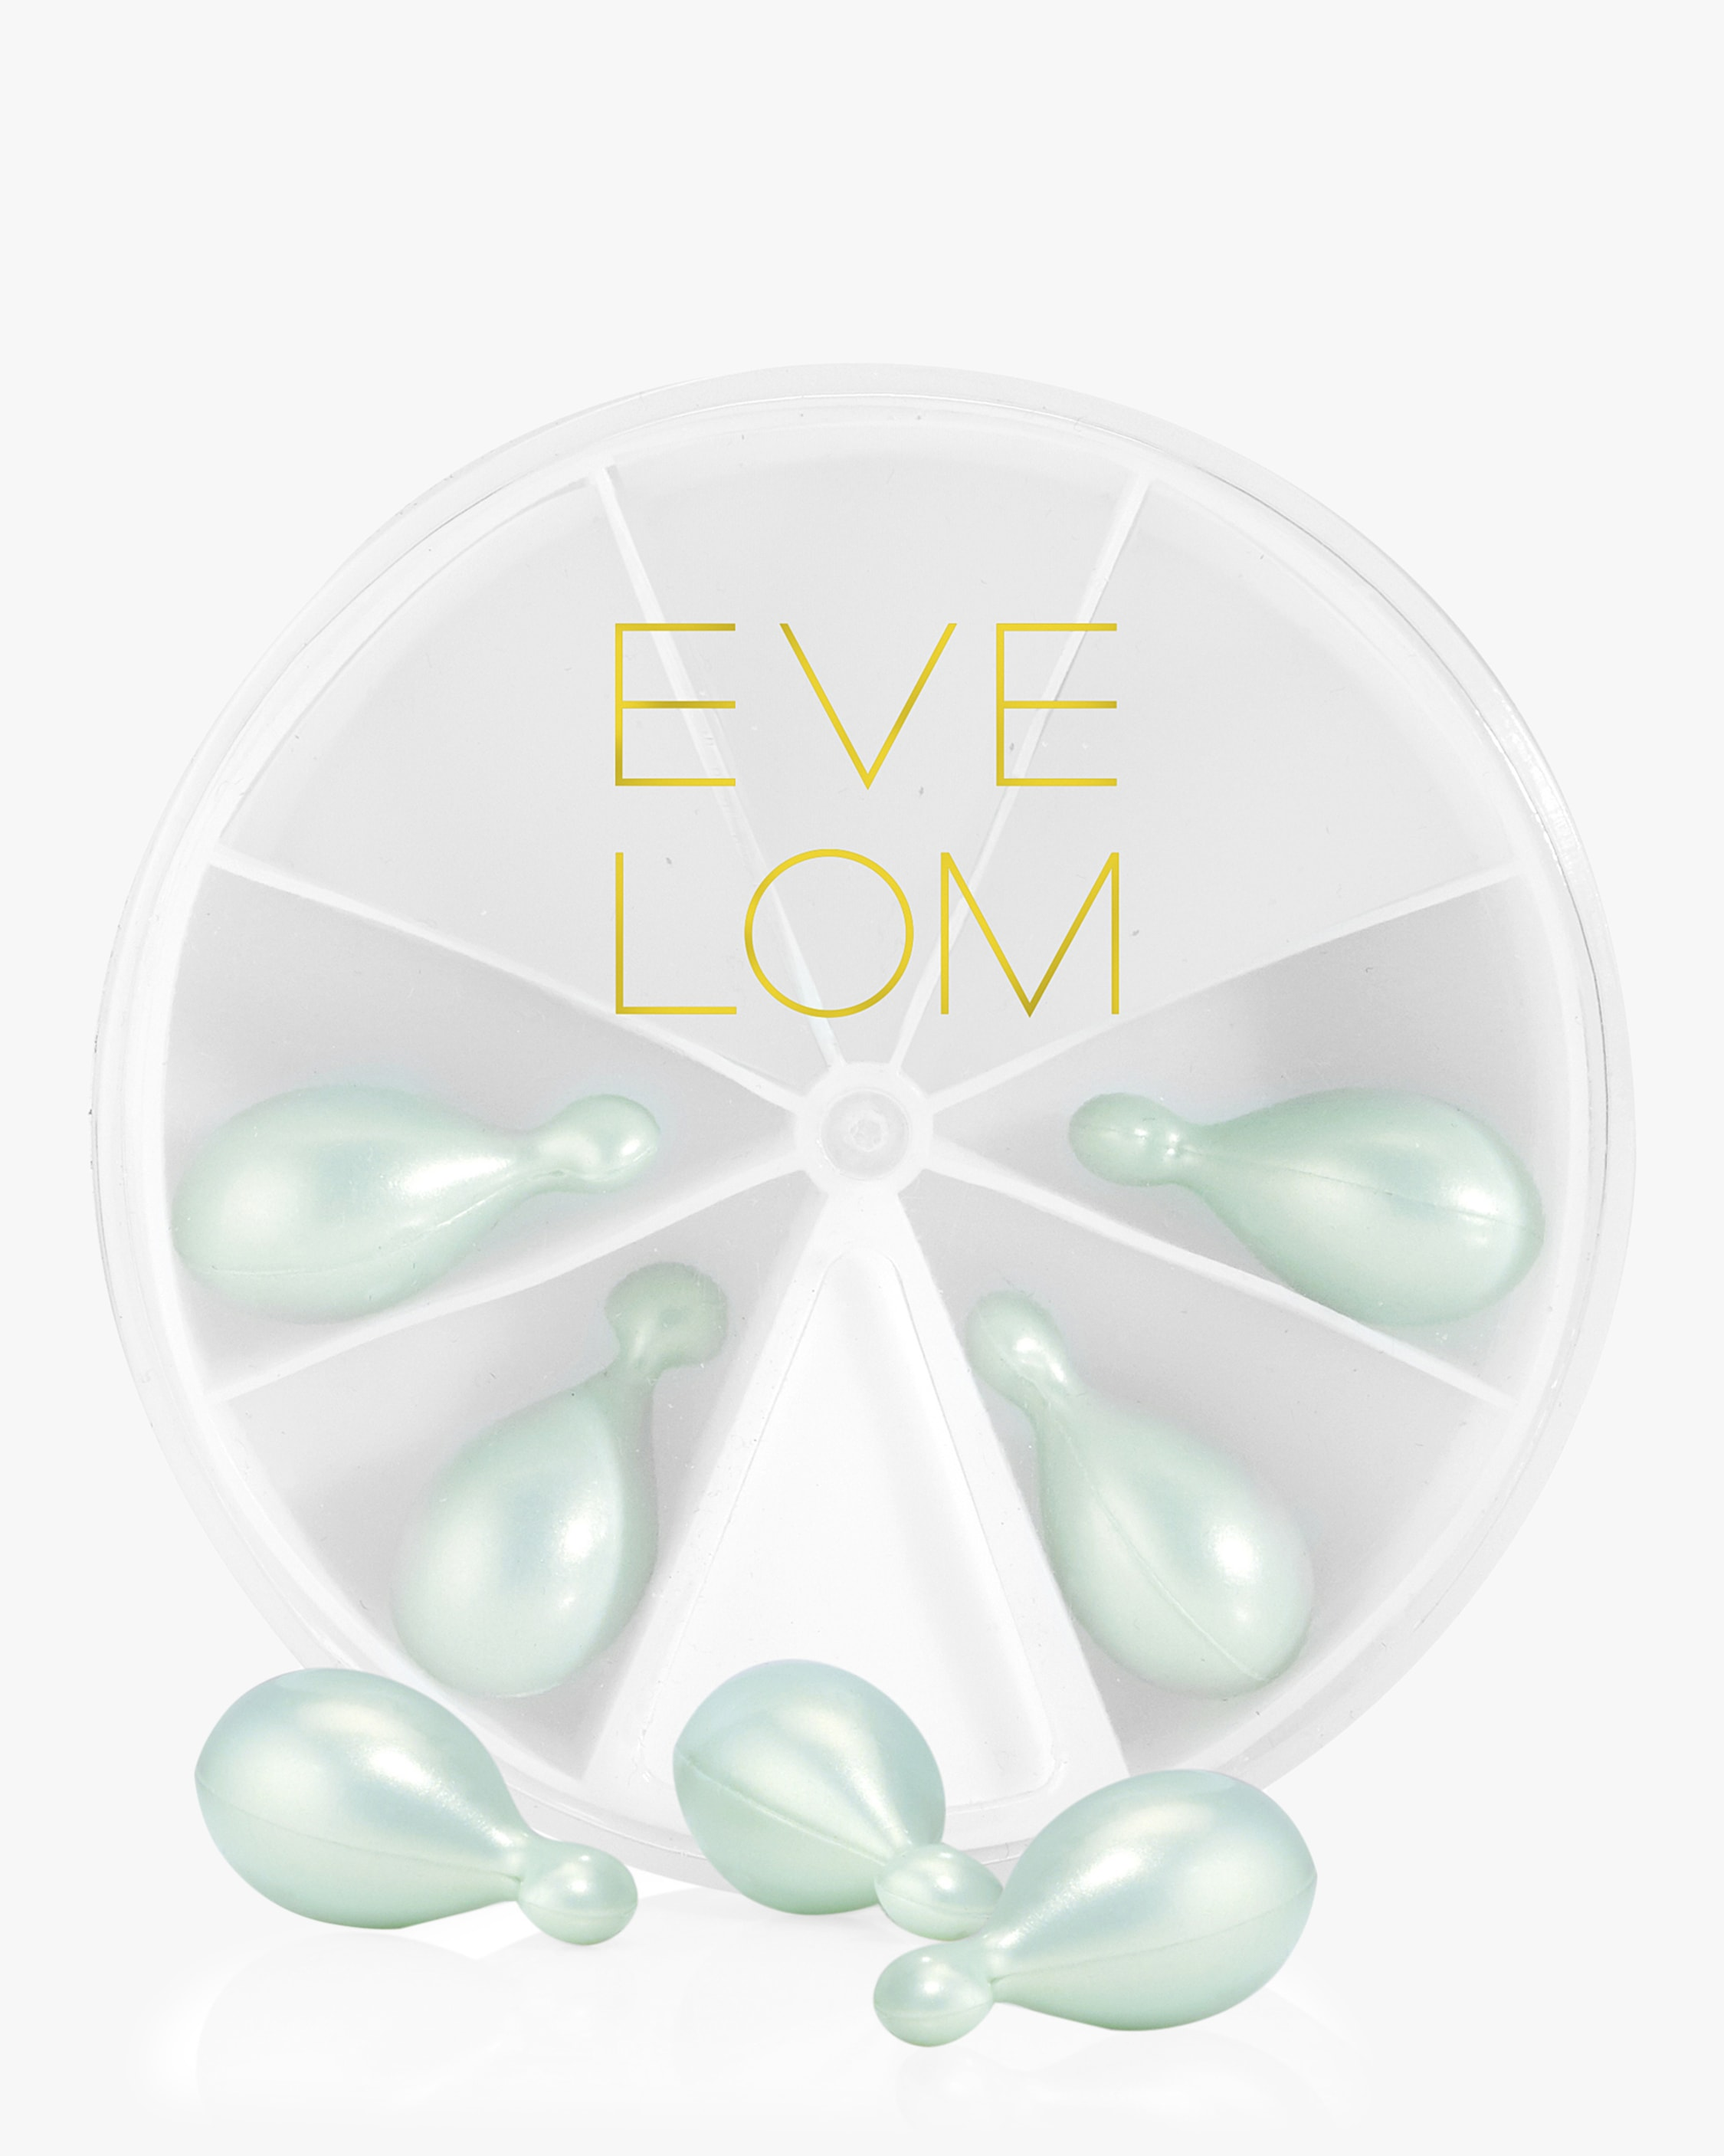 Eve Lom Cleansing Oil Capsules Travel Pack 1